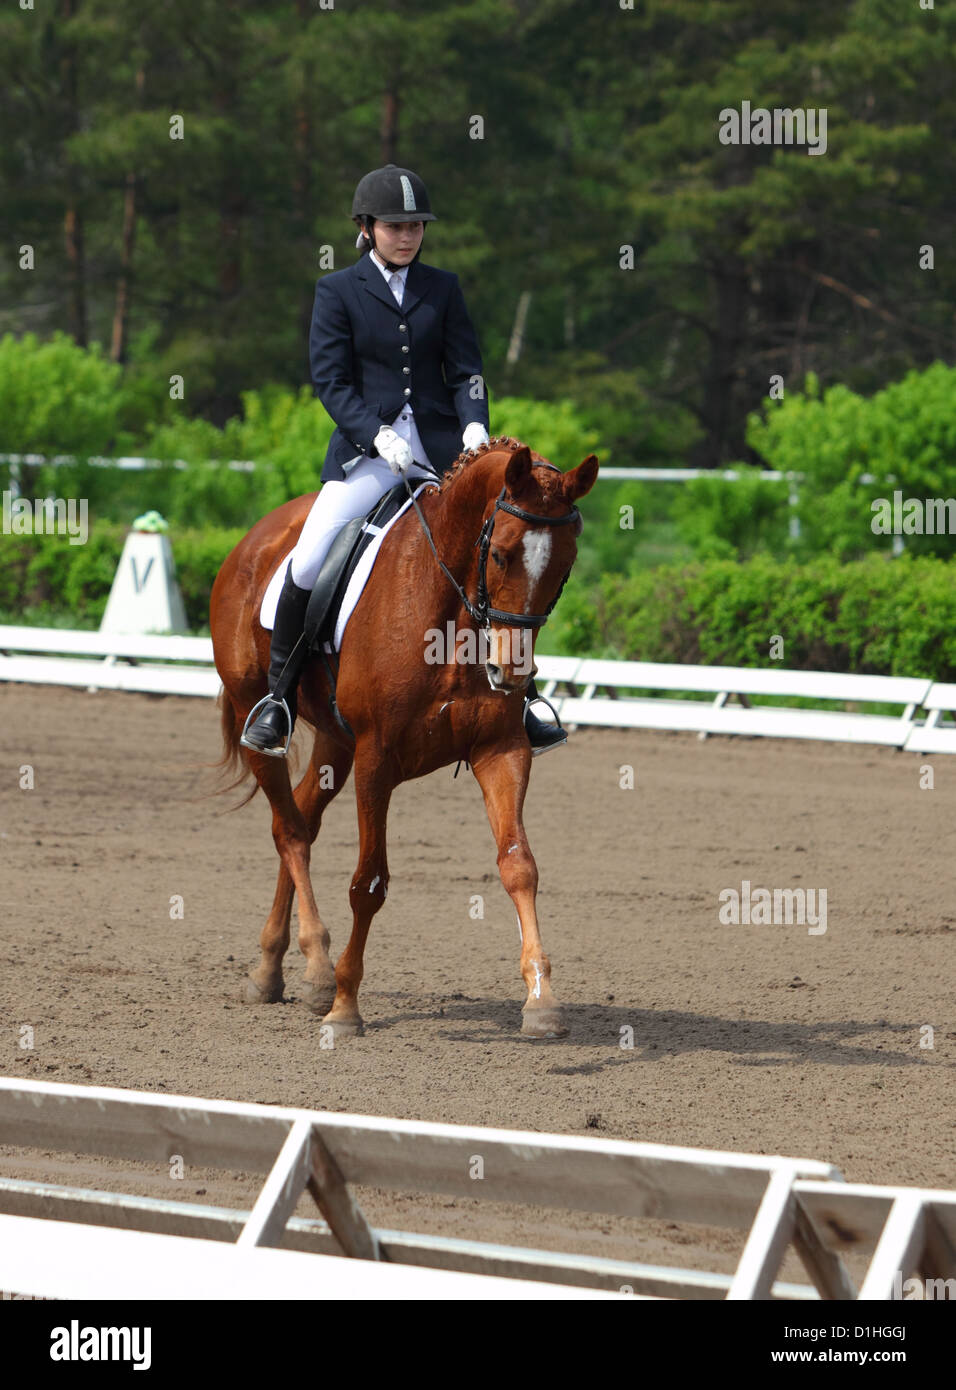 Horse and Rider in an English riding saddle entered in horse Dressage part of an Eventing Competition Event - Stock Image